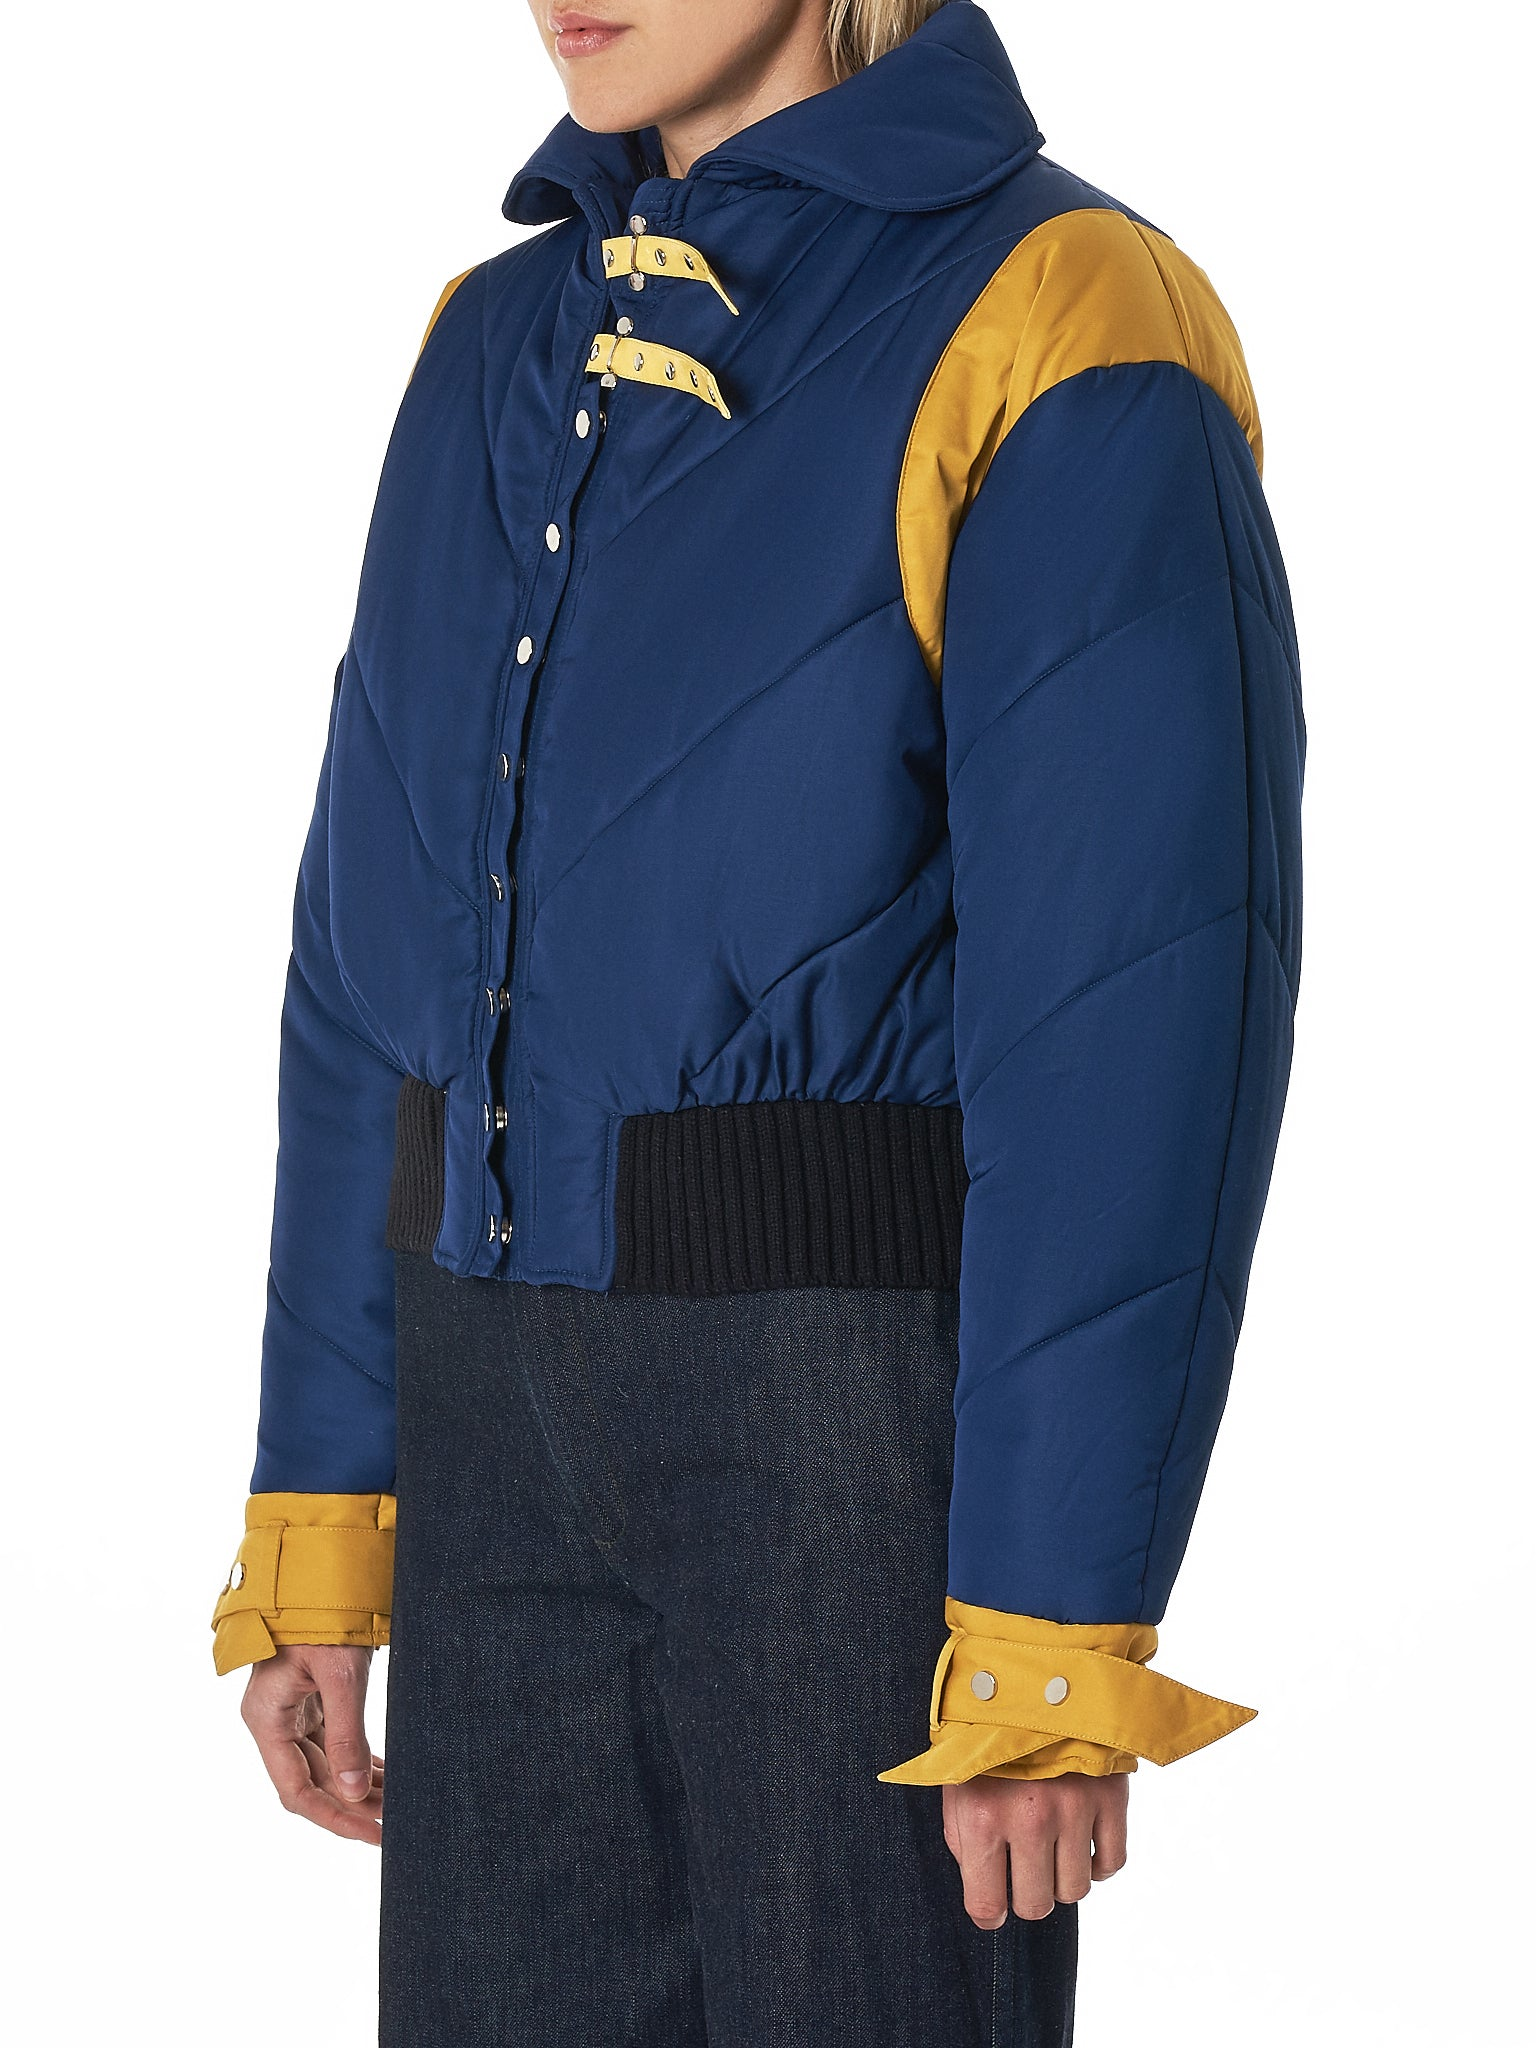 Quilted Colorblock Jacket (HW3186002-NAVY-YELLOW)